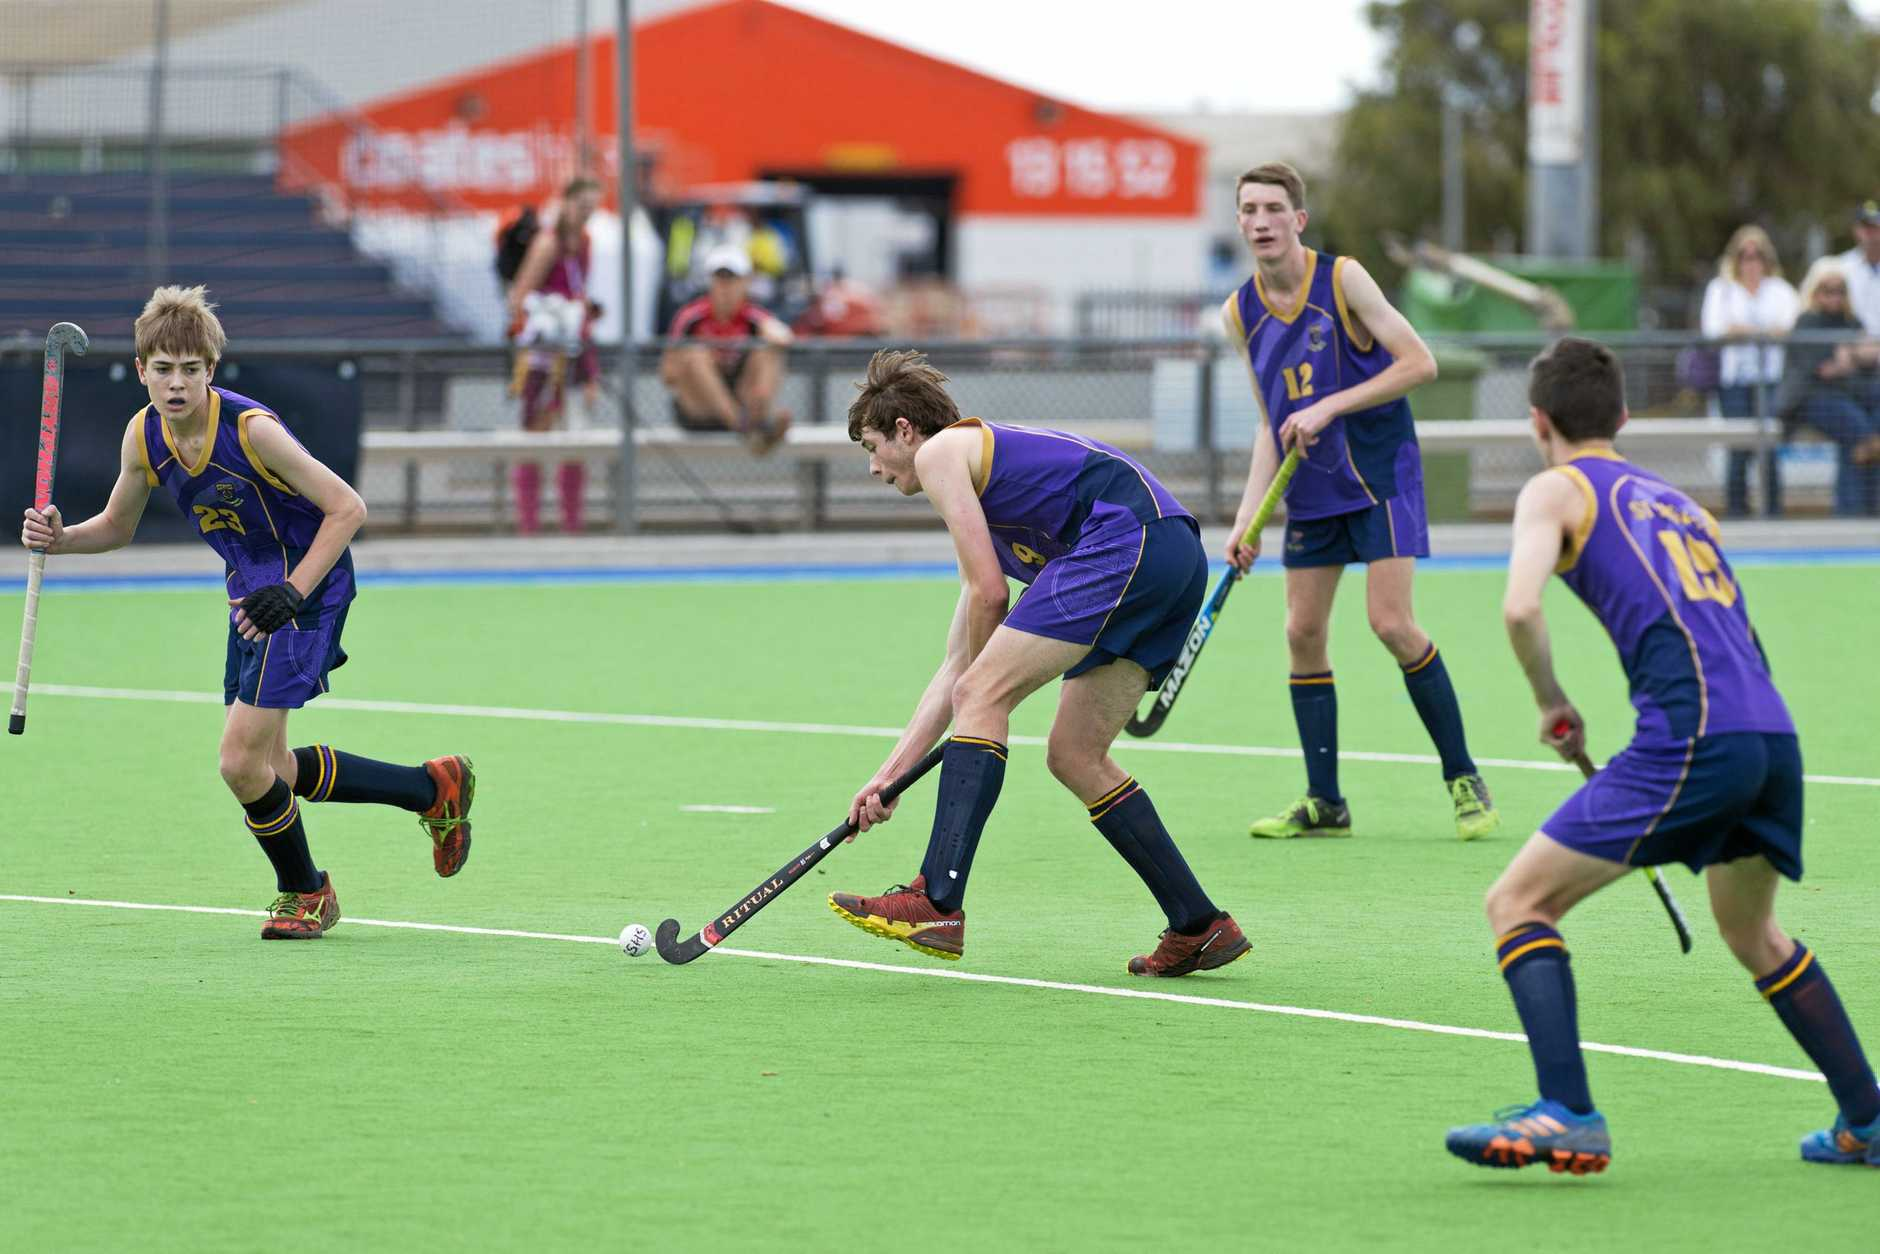 Tom Lebsanft shoots for St Joseph's College against Kirwan State High School, Townsville in boys hockey final of the Queensland All Schools Cup at Clyde Park, Monday, October 23, 2017., Tuesday, October 24, 2017.